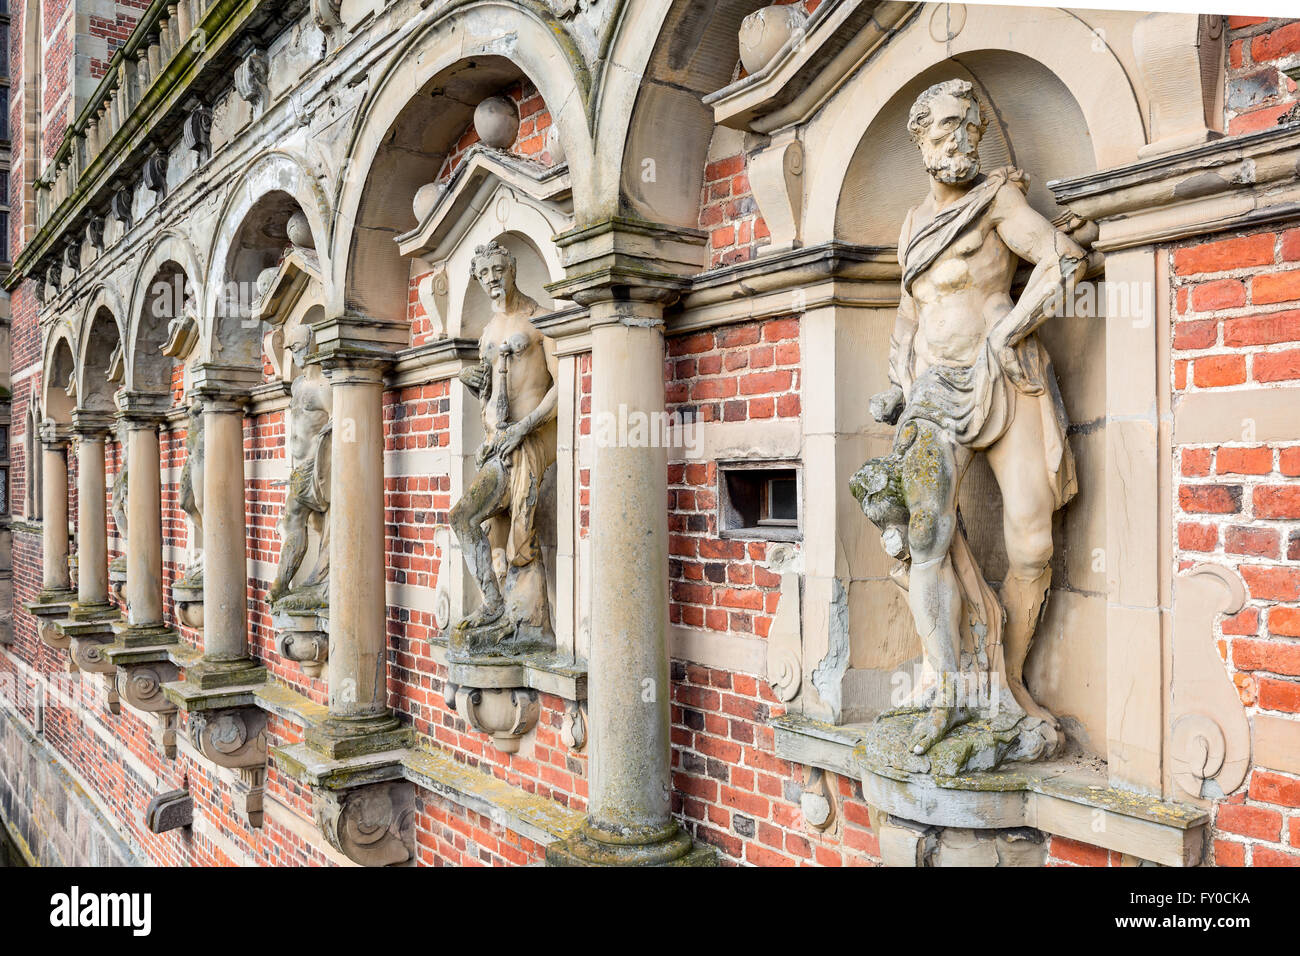 Details from the arcade, Frederiksborg Castle, Denmark - Stock Image